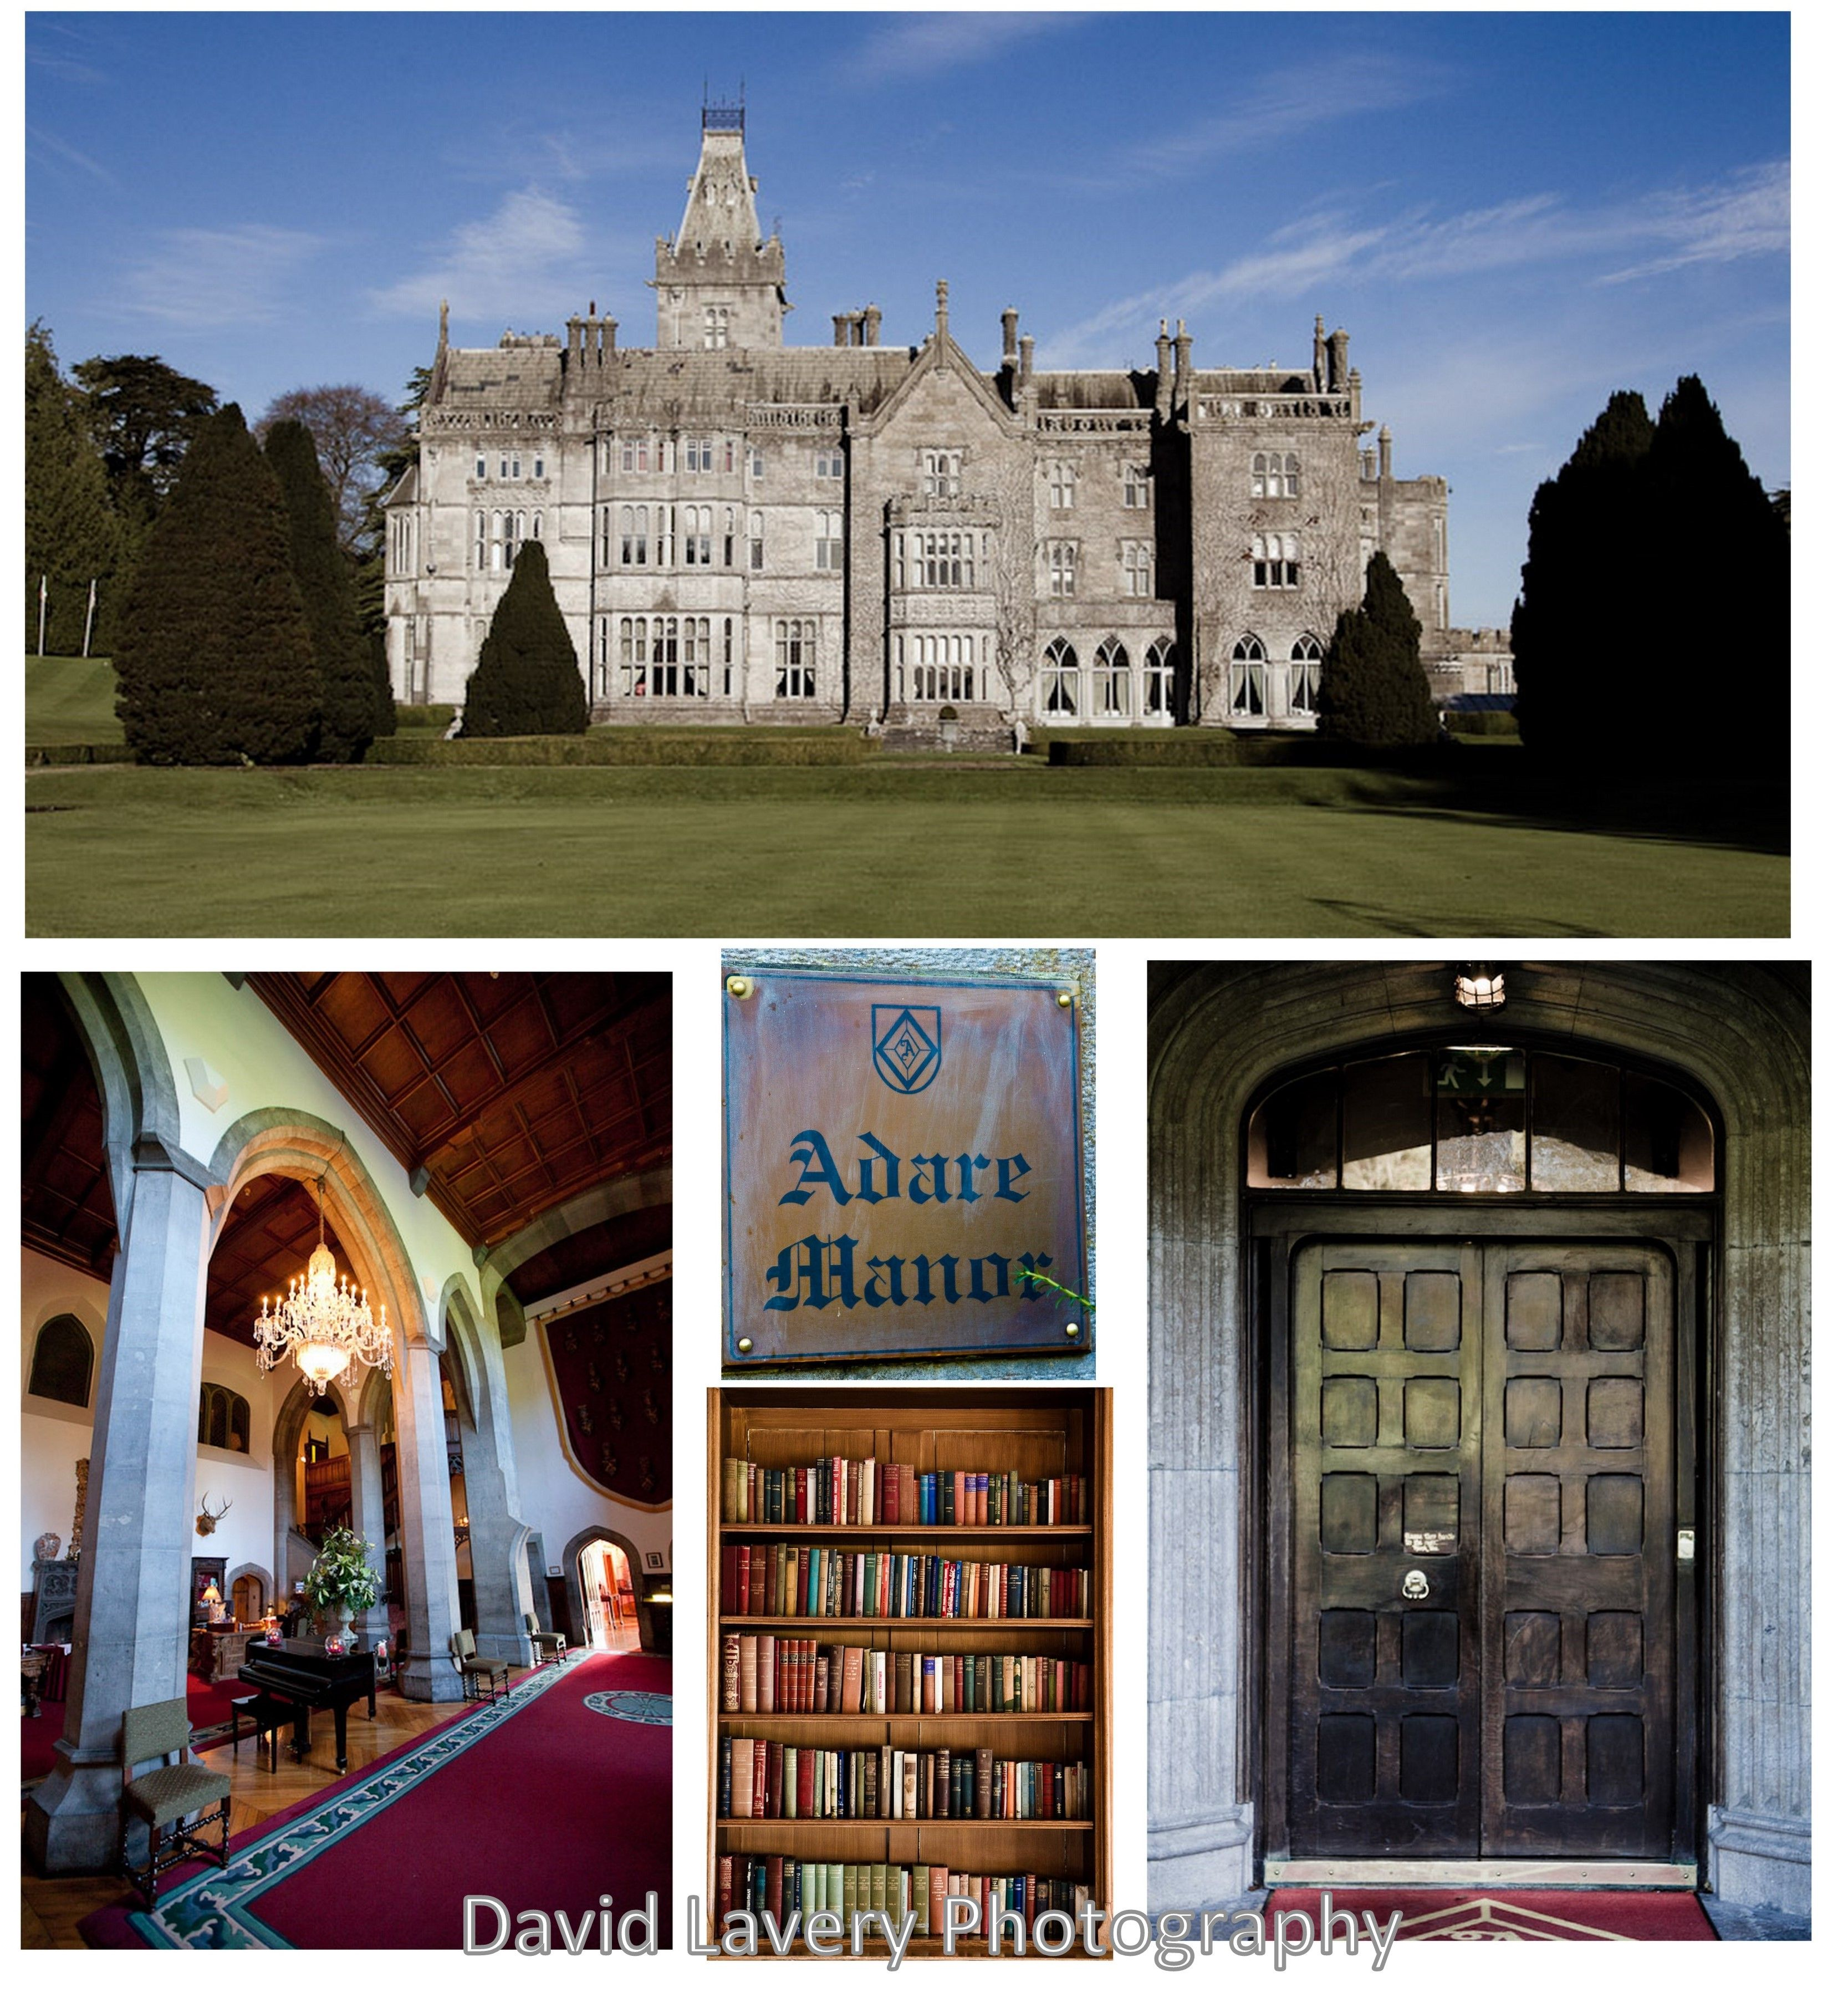 Adare Manor Wedding Is A Popular Choice For American